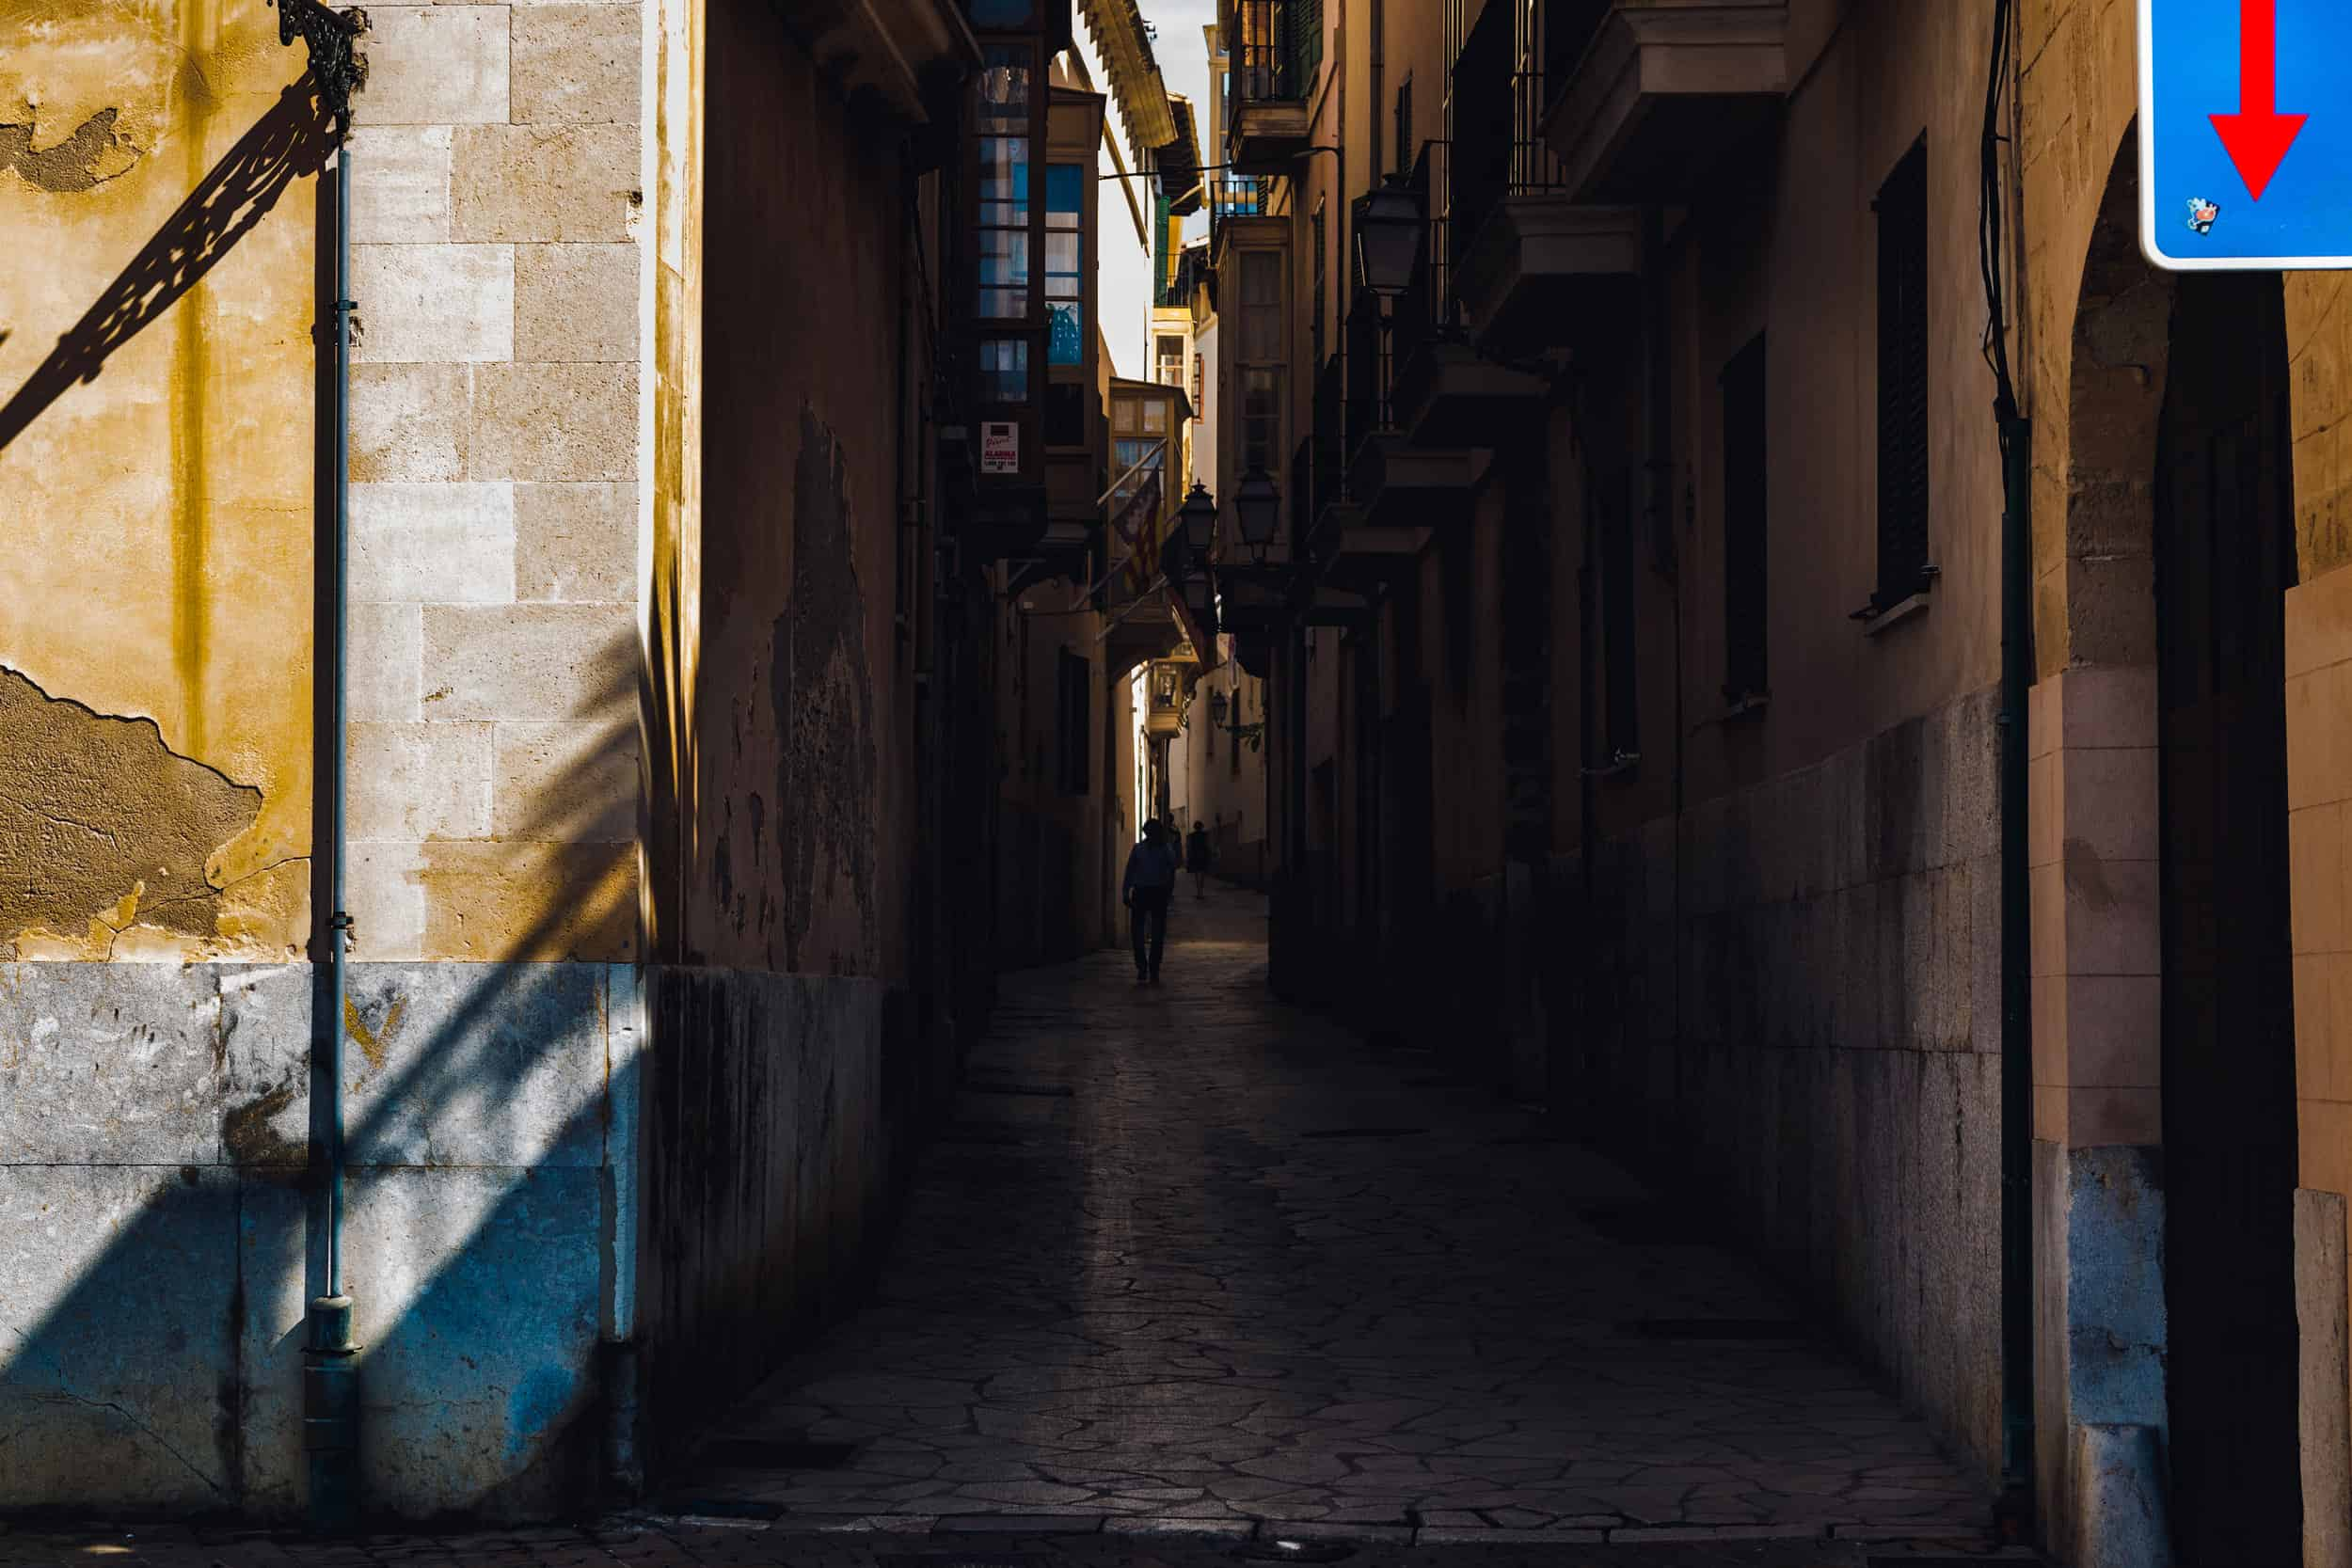 Covid 19 Chronicle: A Film on Mental Health While Under Quarantine in Spain